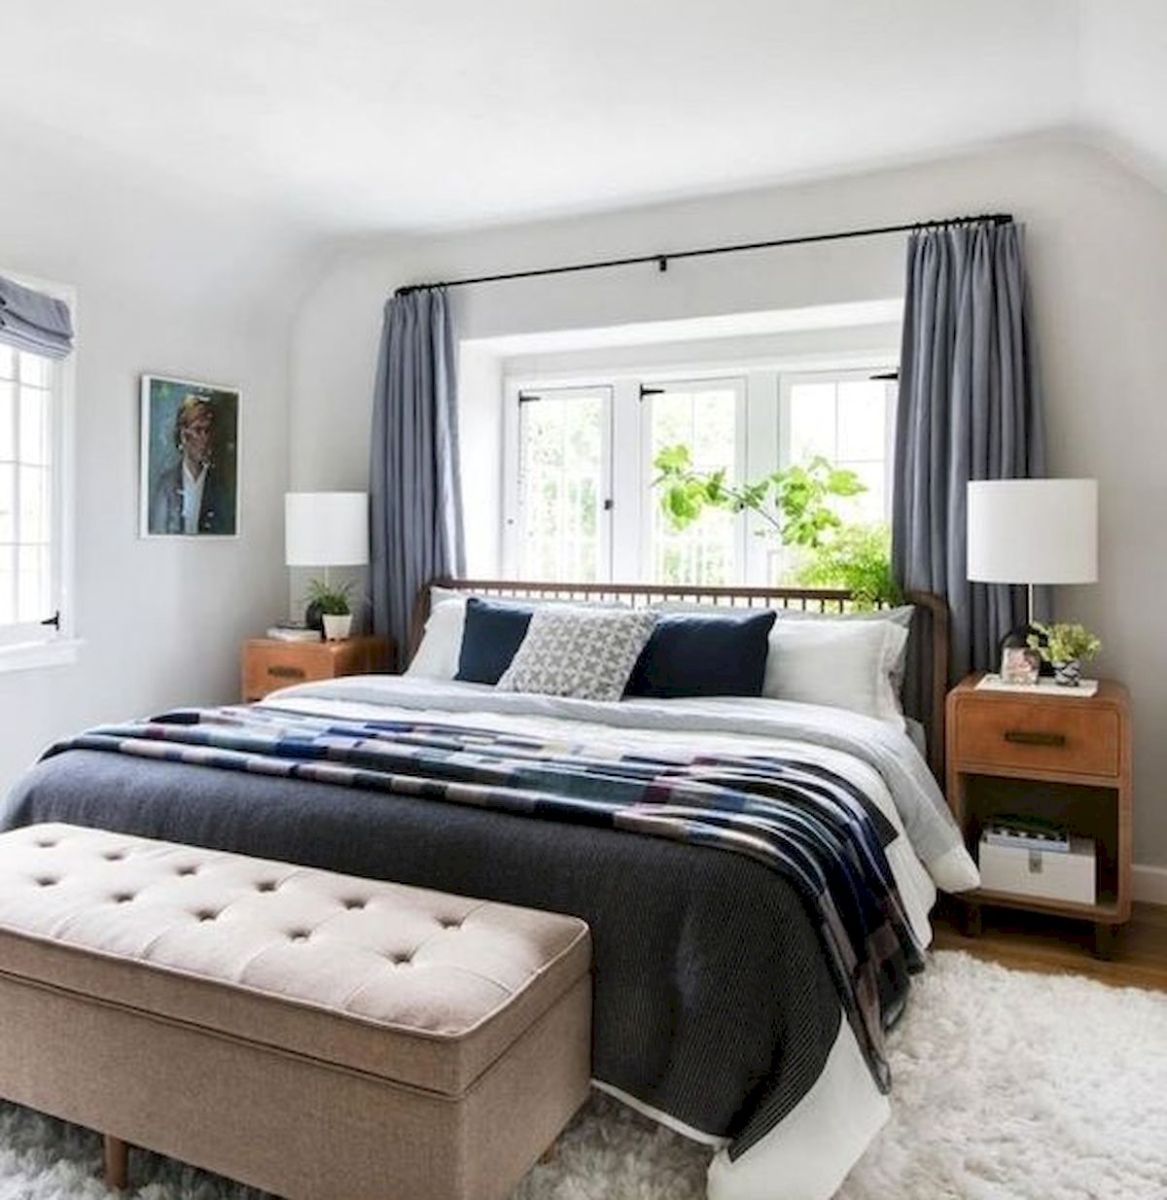 33 Ideas For Small Apartment Bedroom (15)